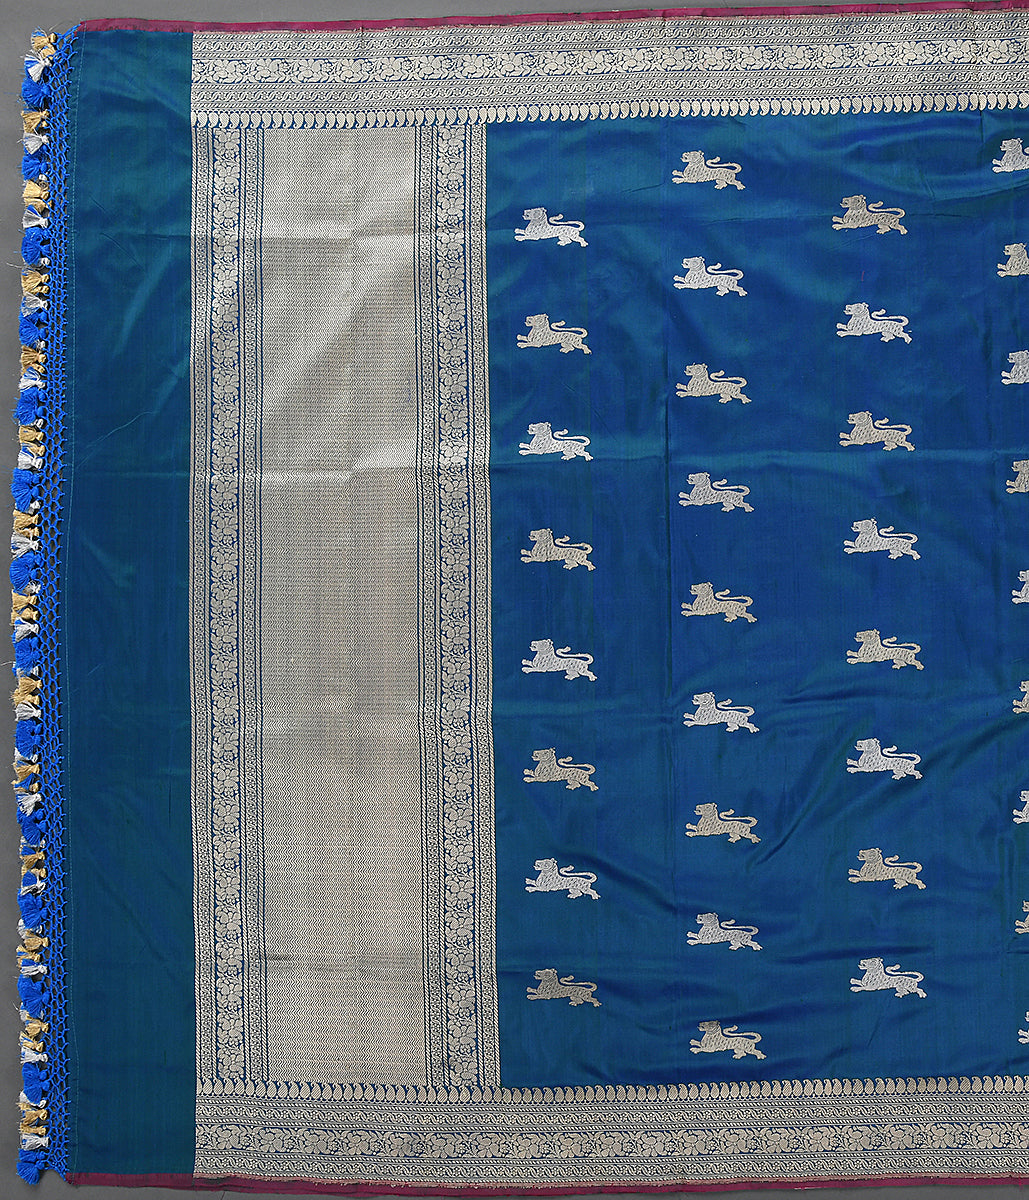 Handwoven Blue Banarasi Dupatta with Lion Motifs